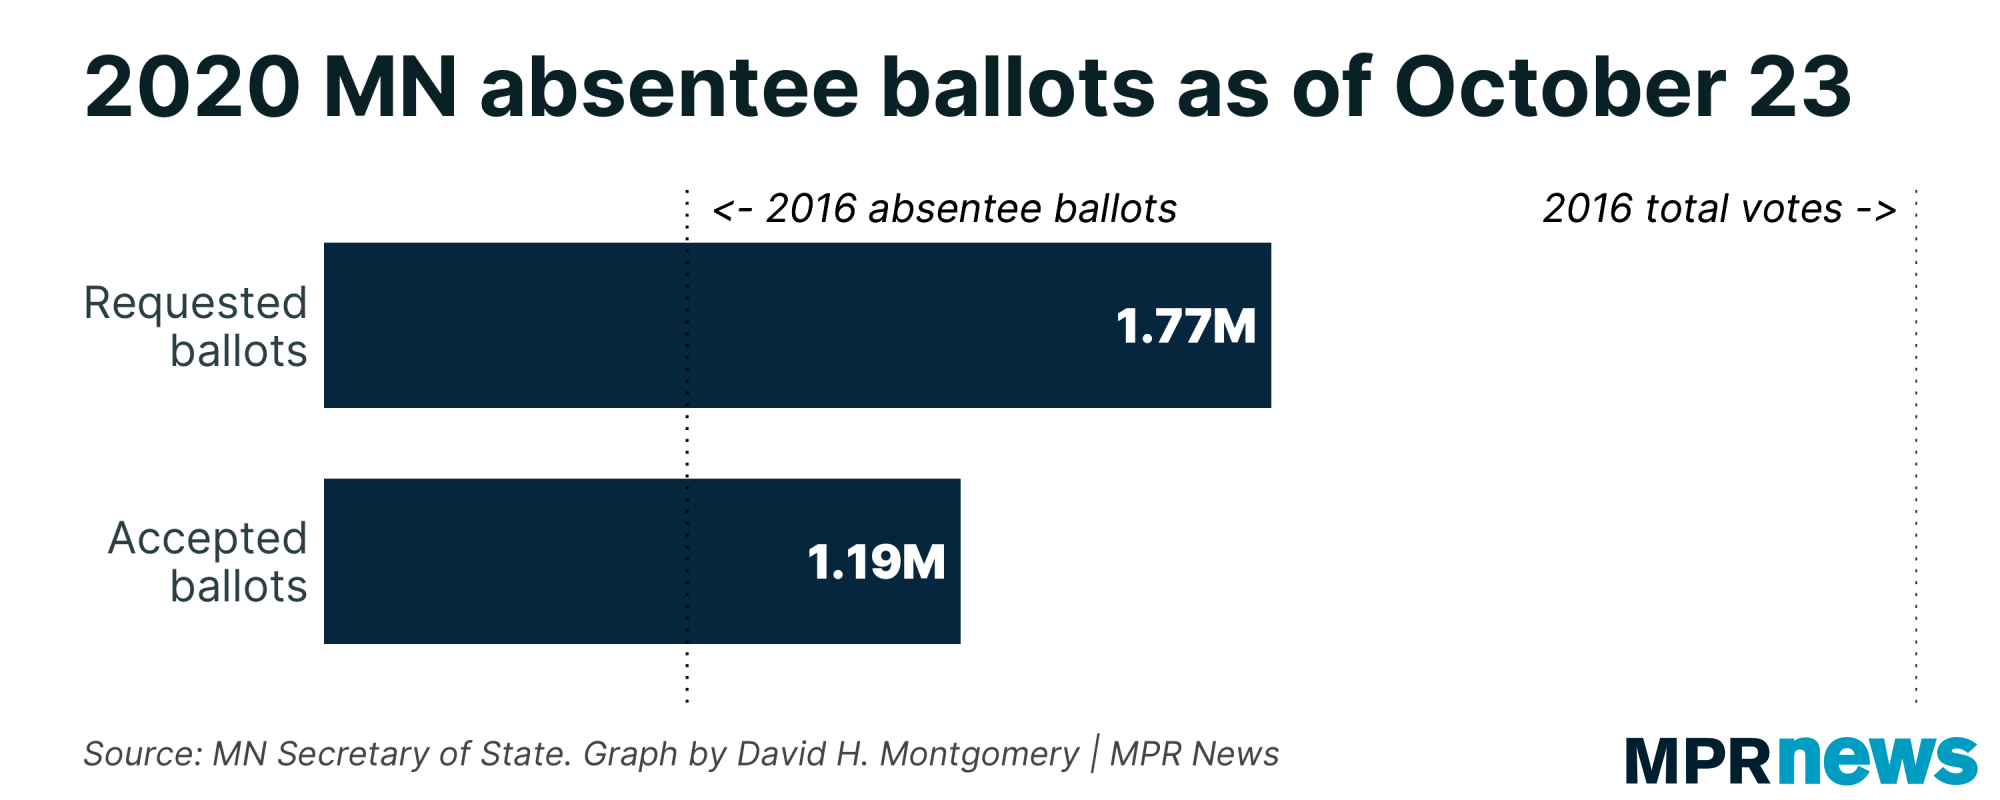 Absentee ballots requested and accepted as of Oct. 23